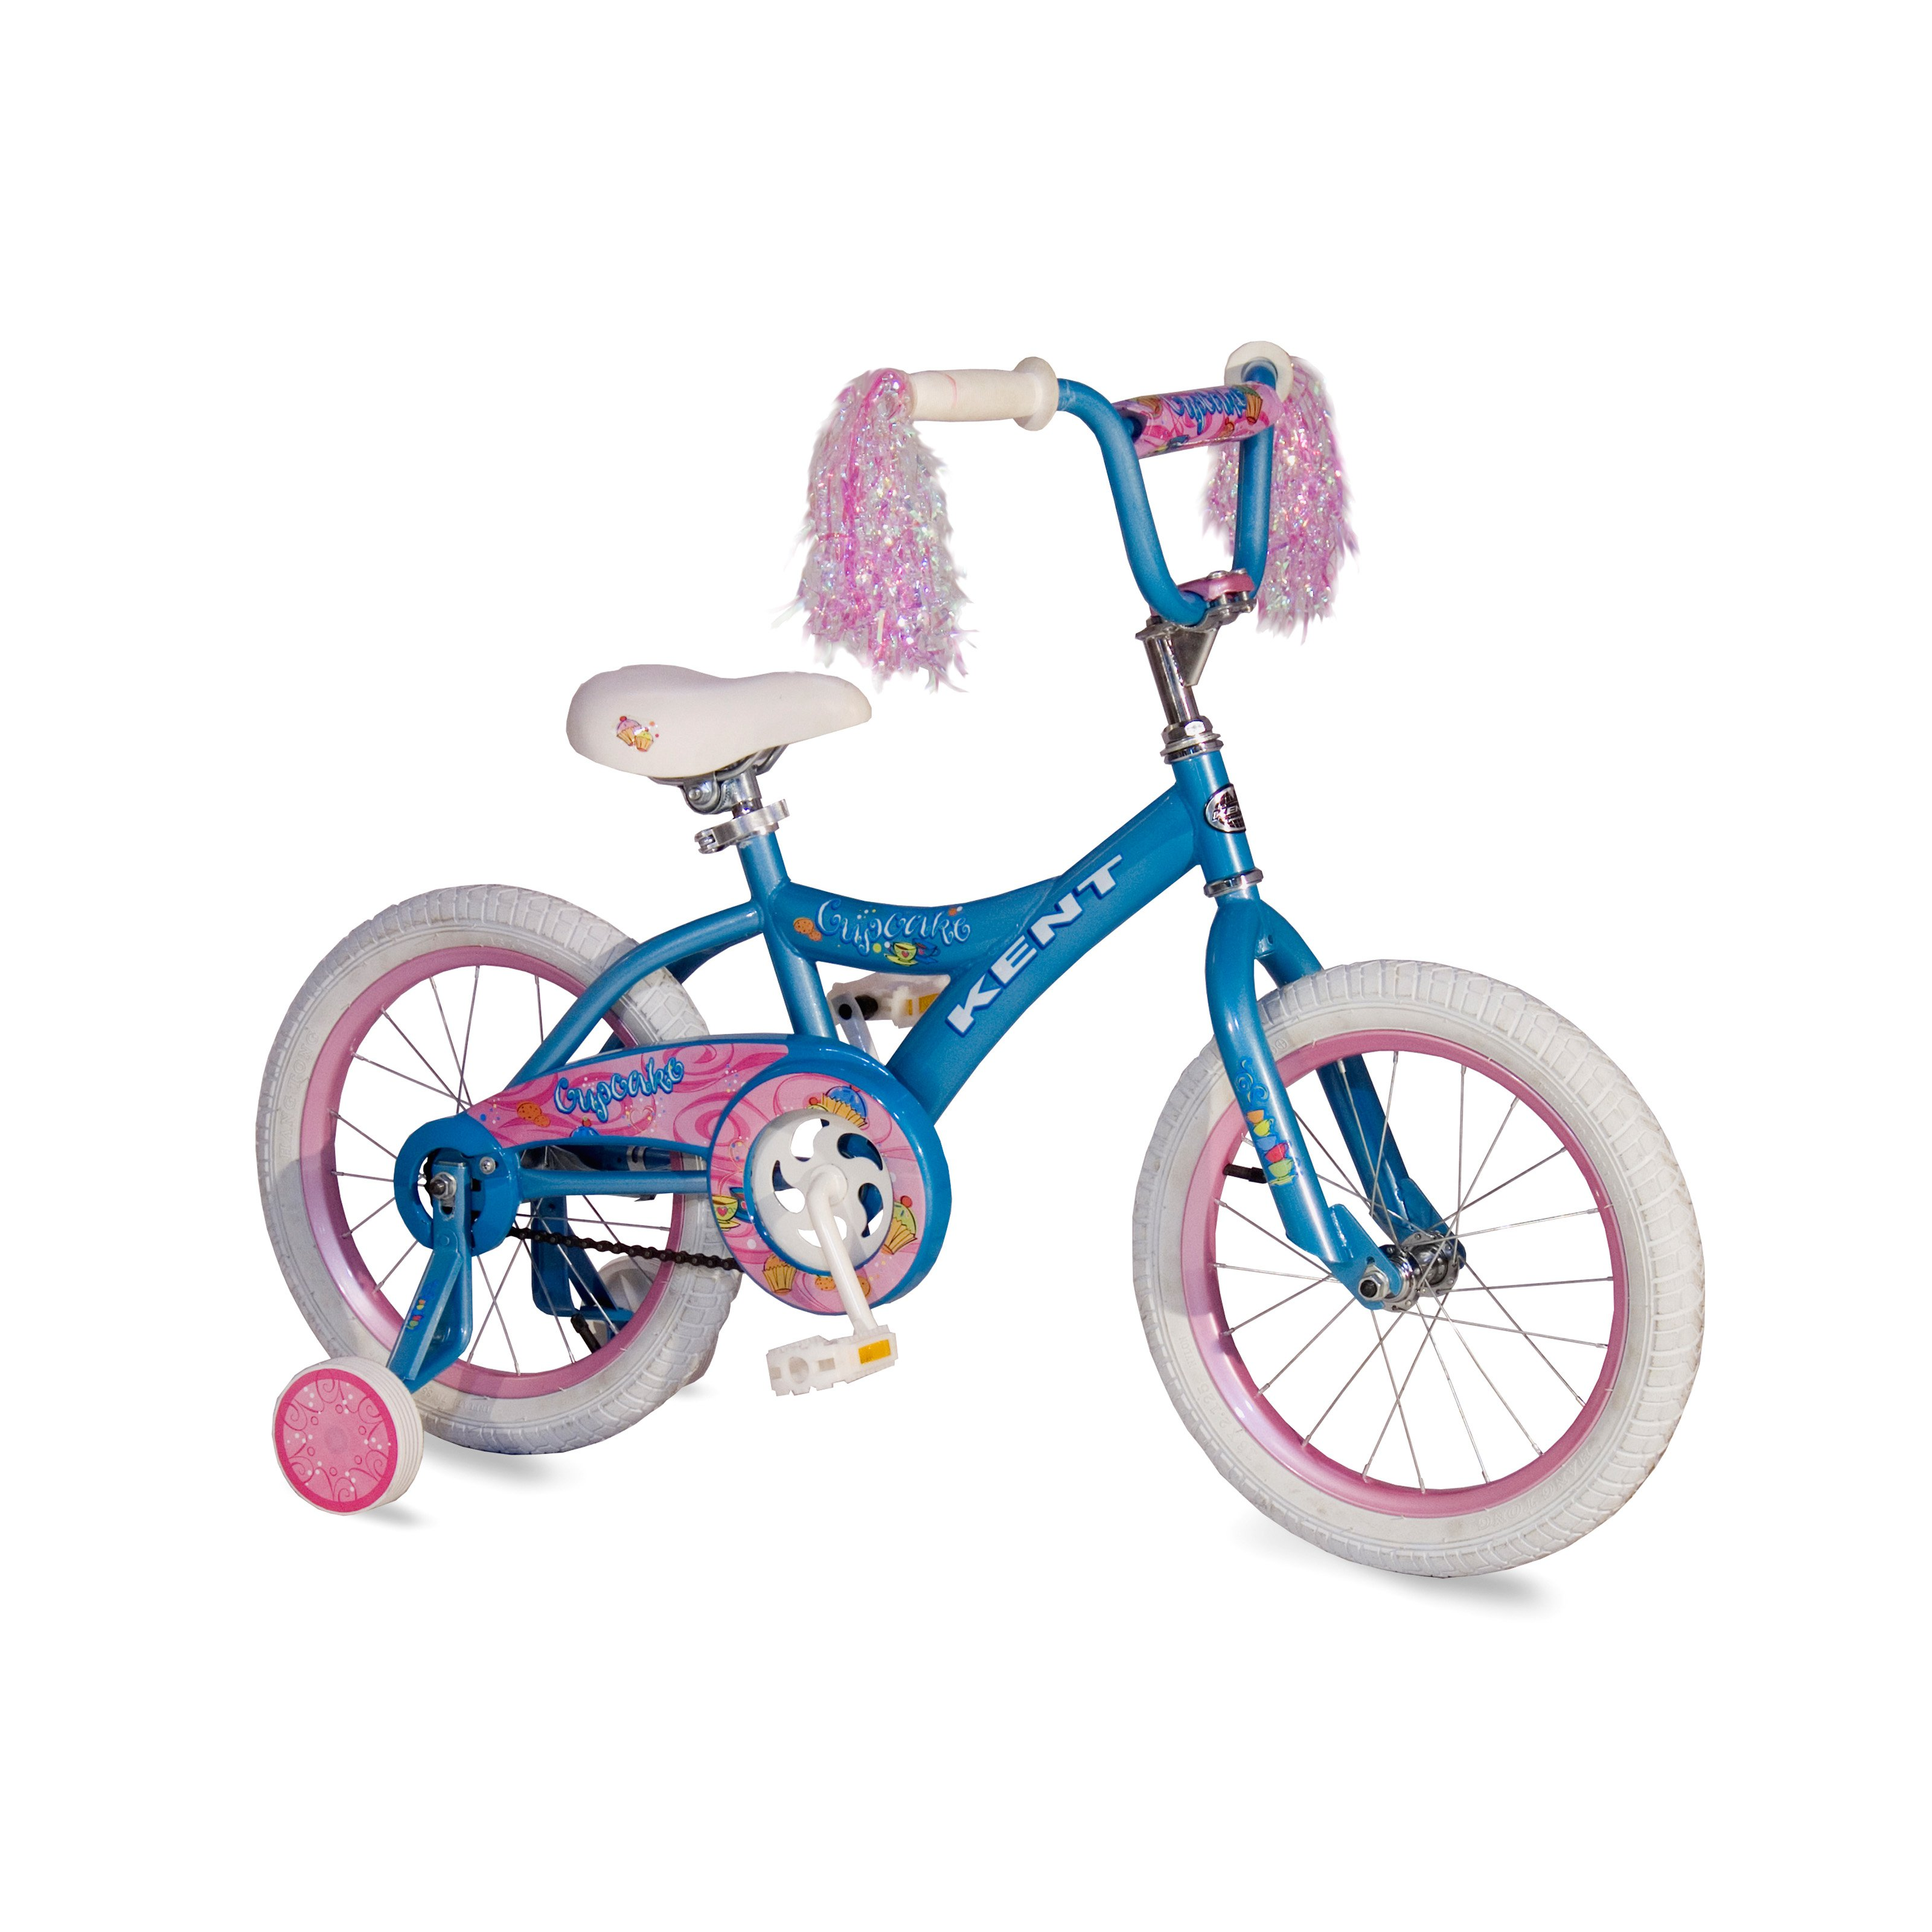 Kent 16 in. Girls Cupcakes Bike